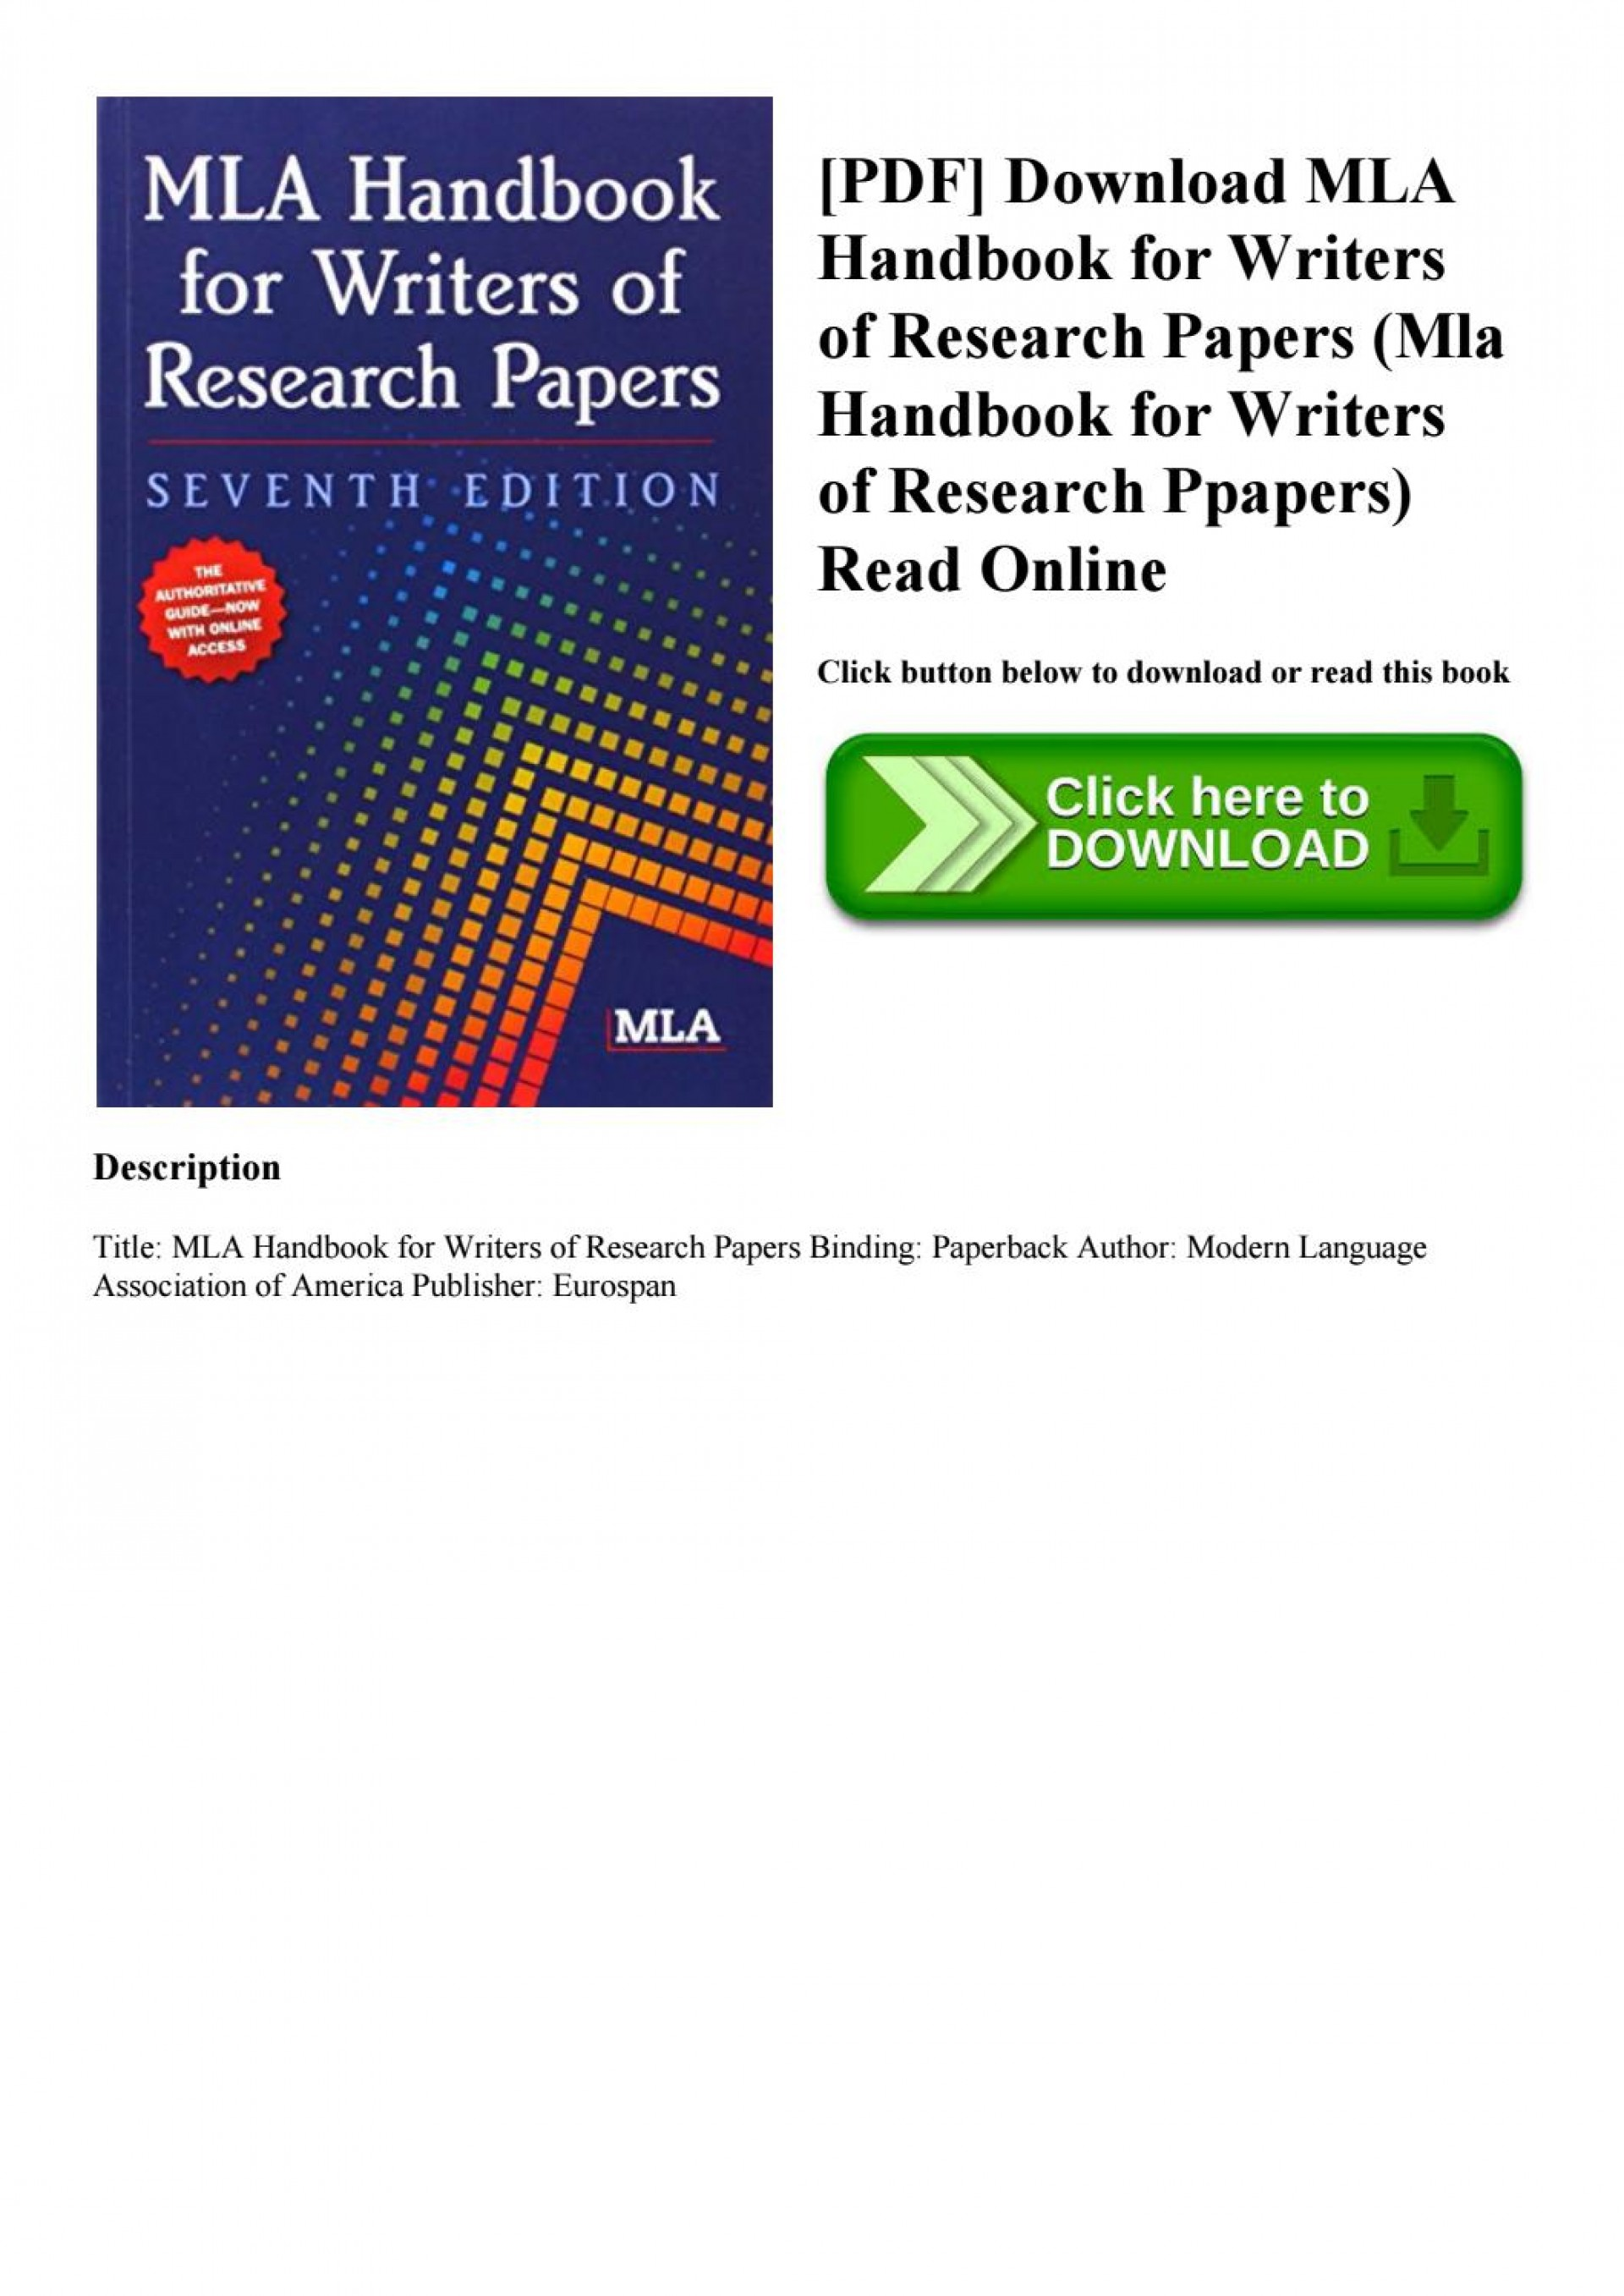 001 Mla Handbook For Writers Of Research Papers Pdf Download Paper Page 1 Top 8th Edition Free 1920